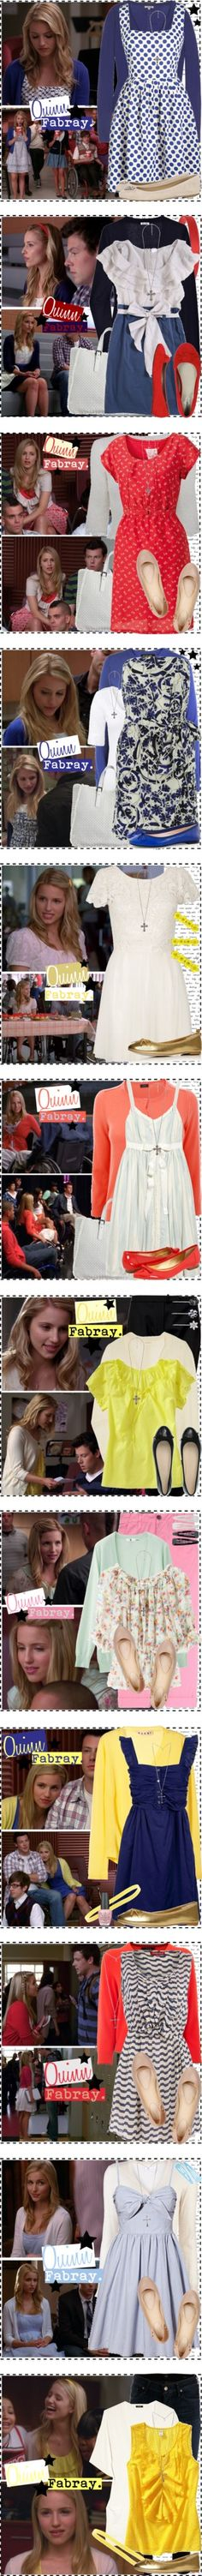 """Quinn Fabray [Glee]."" by silver-screen-style ❤ liked on Polyvore"